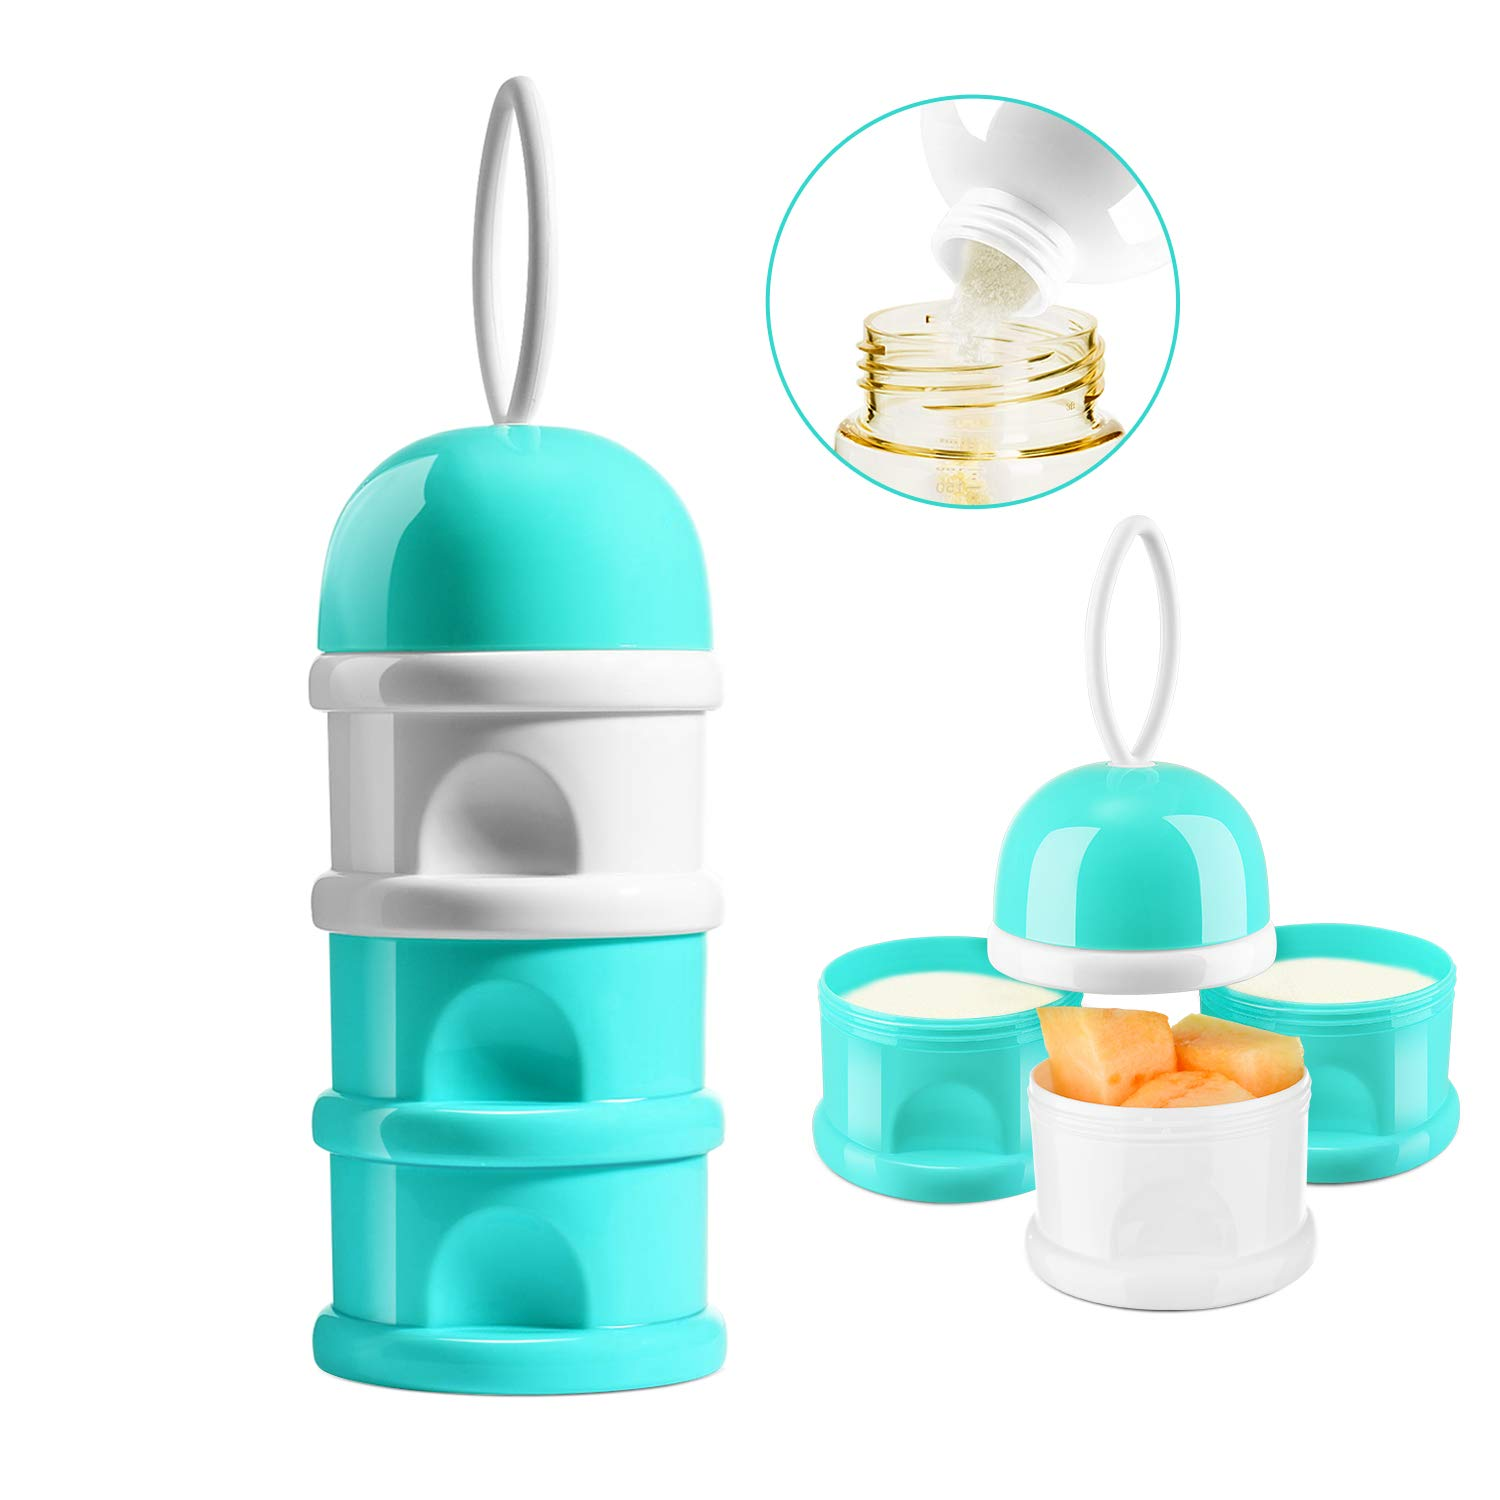 ORIY Baby Milk Powder Formula Dispenser,Large Capacity,Non-Spill Twist-Lock Stackable Milk Powder Formula Container and Snack Storage for Travel,Powder Leakage Free,BPA Free,3 Compartment,Green